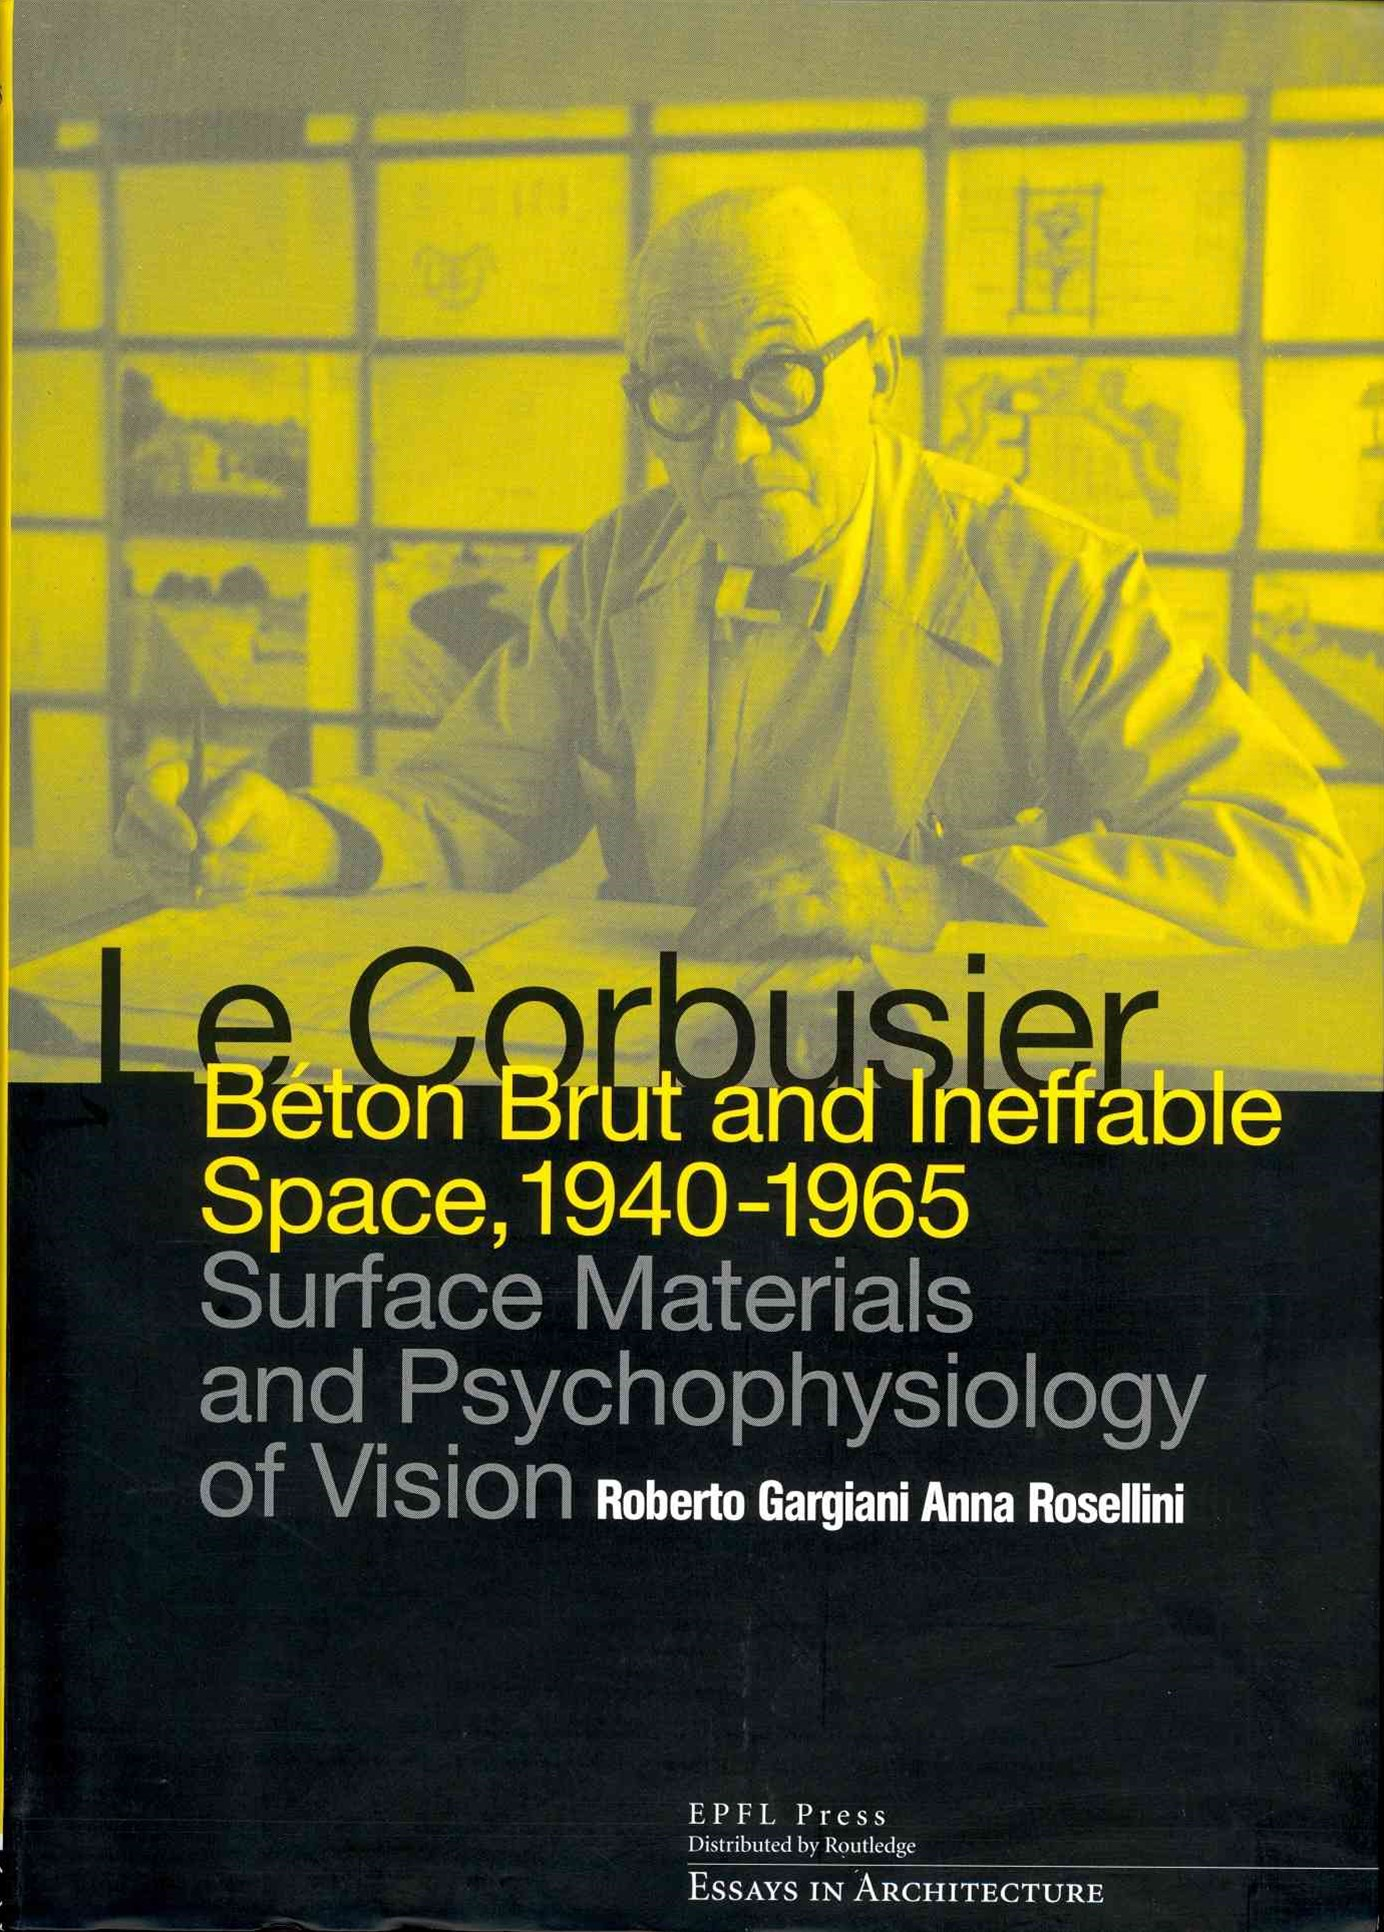 Corbusier: Beton Brut and Ineffable Space (1940 - 1965)